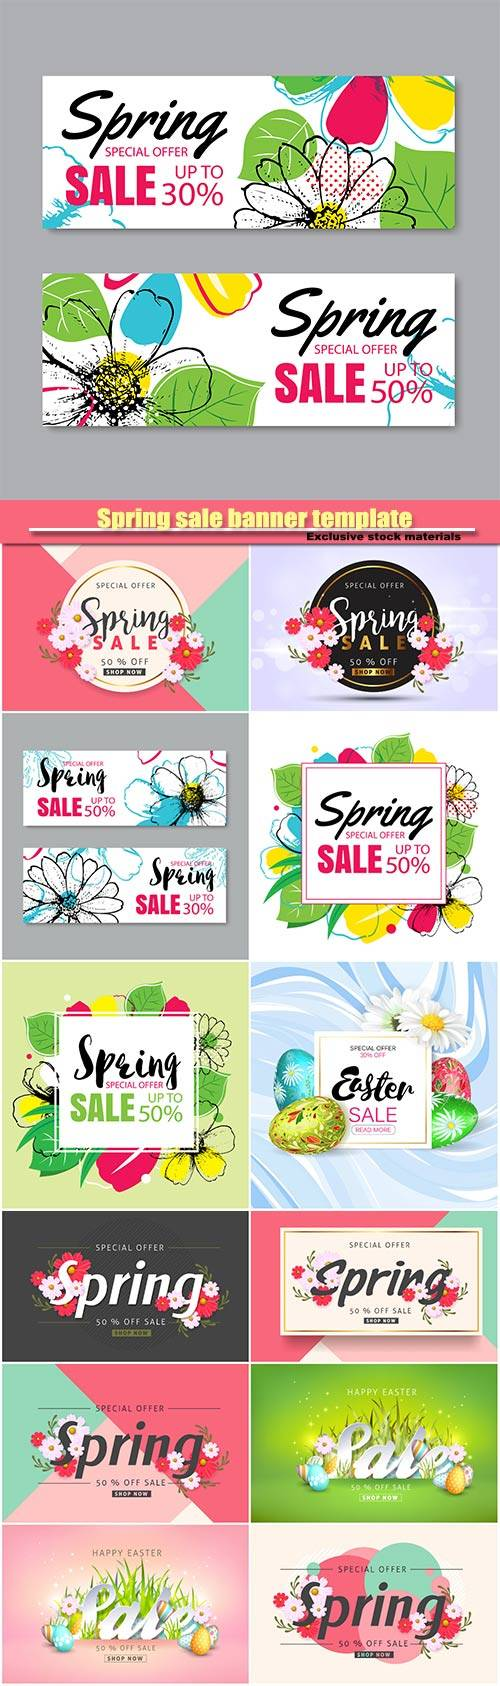 Spring sale banner template, posters, brochure, coupon discount